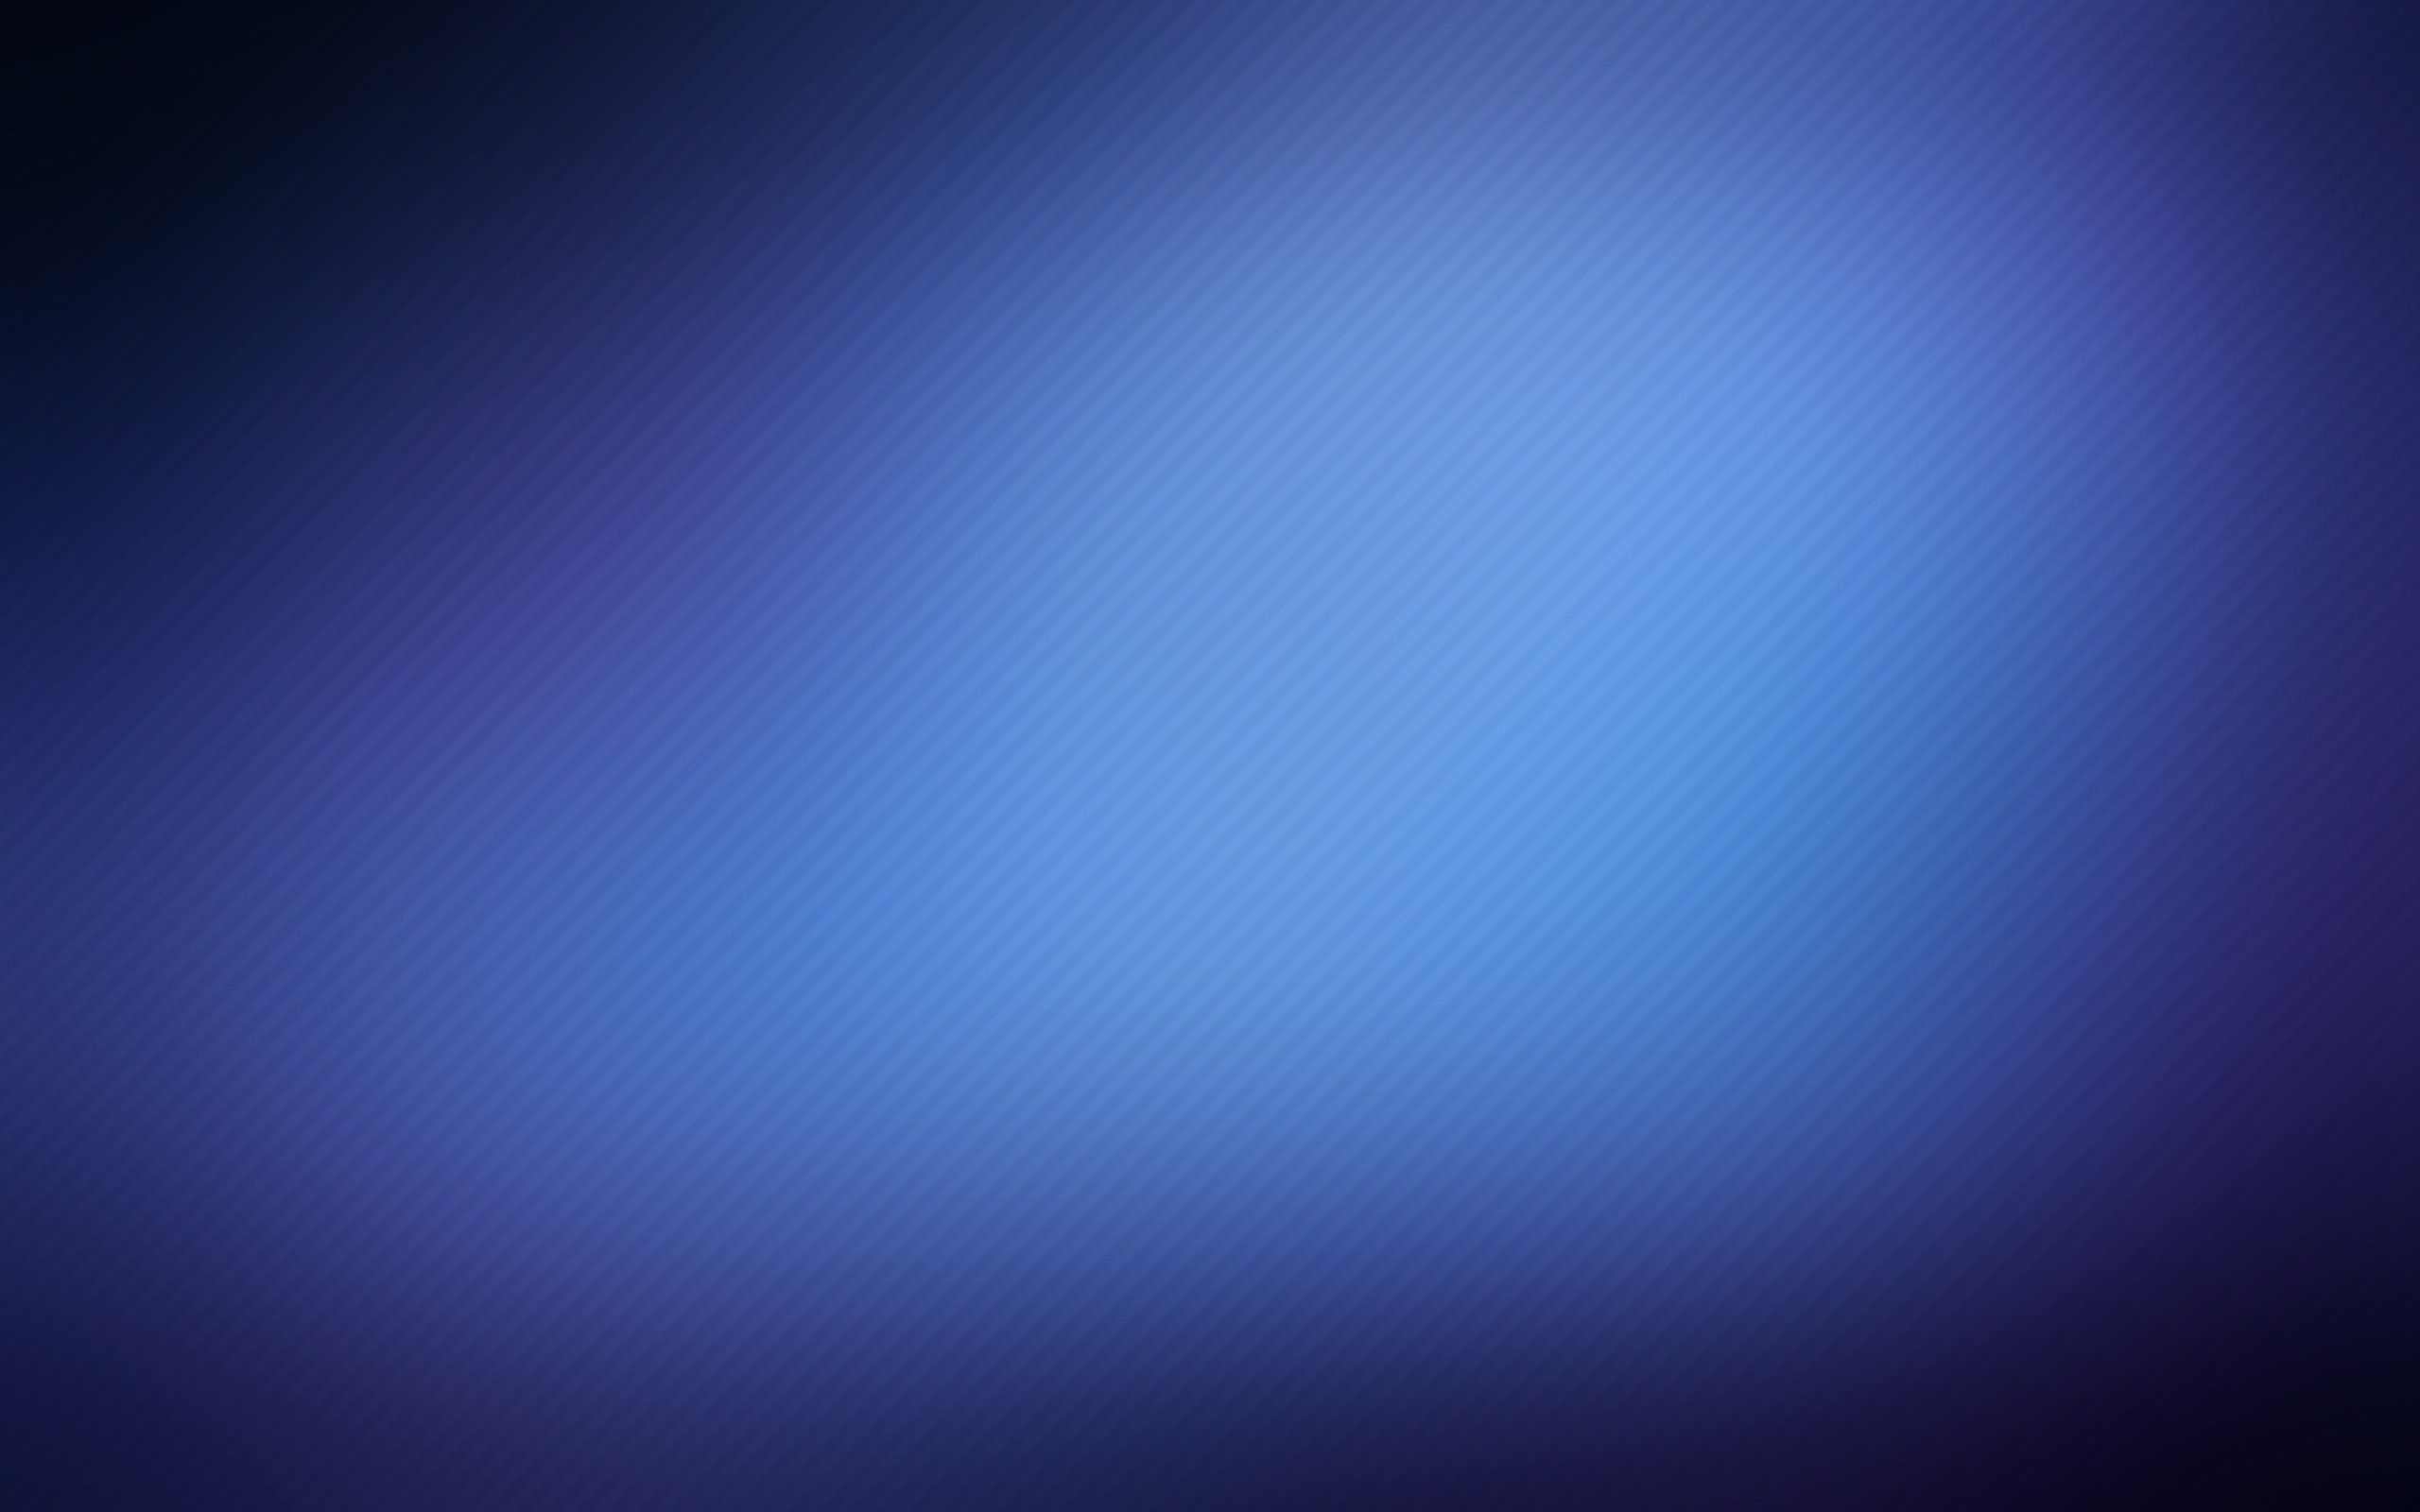 Plain background wallpapers hd free ololoshenka for Plain blue wallpaper for walls